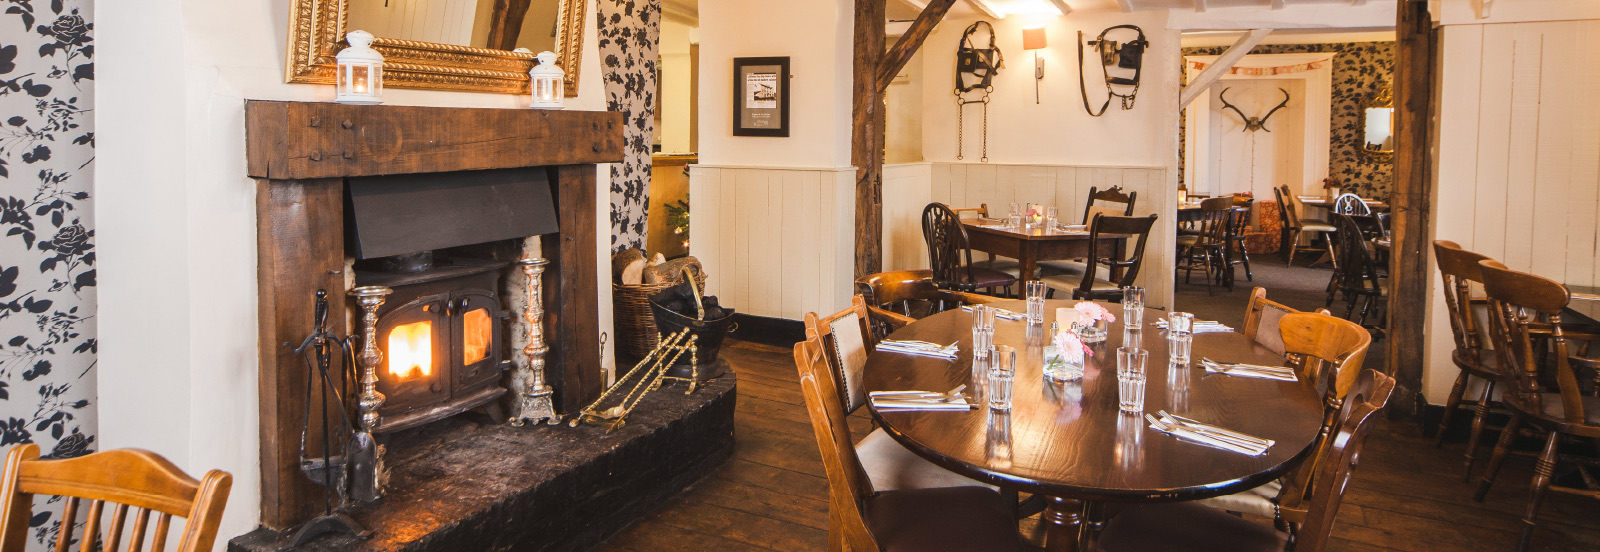 The Littleton Arms Restaurant, Penkridge, Staffordshire